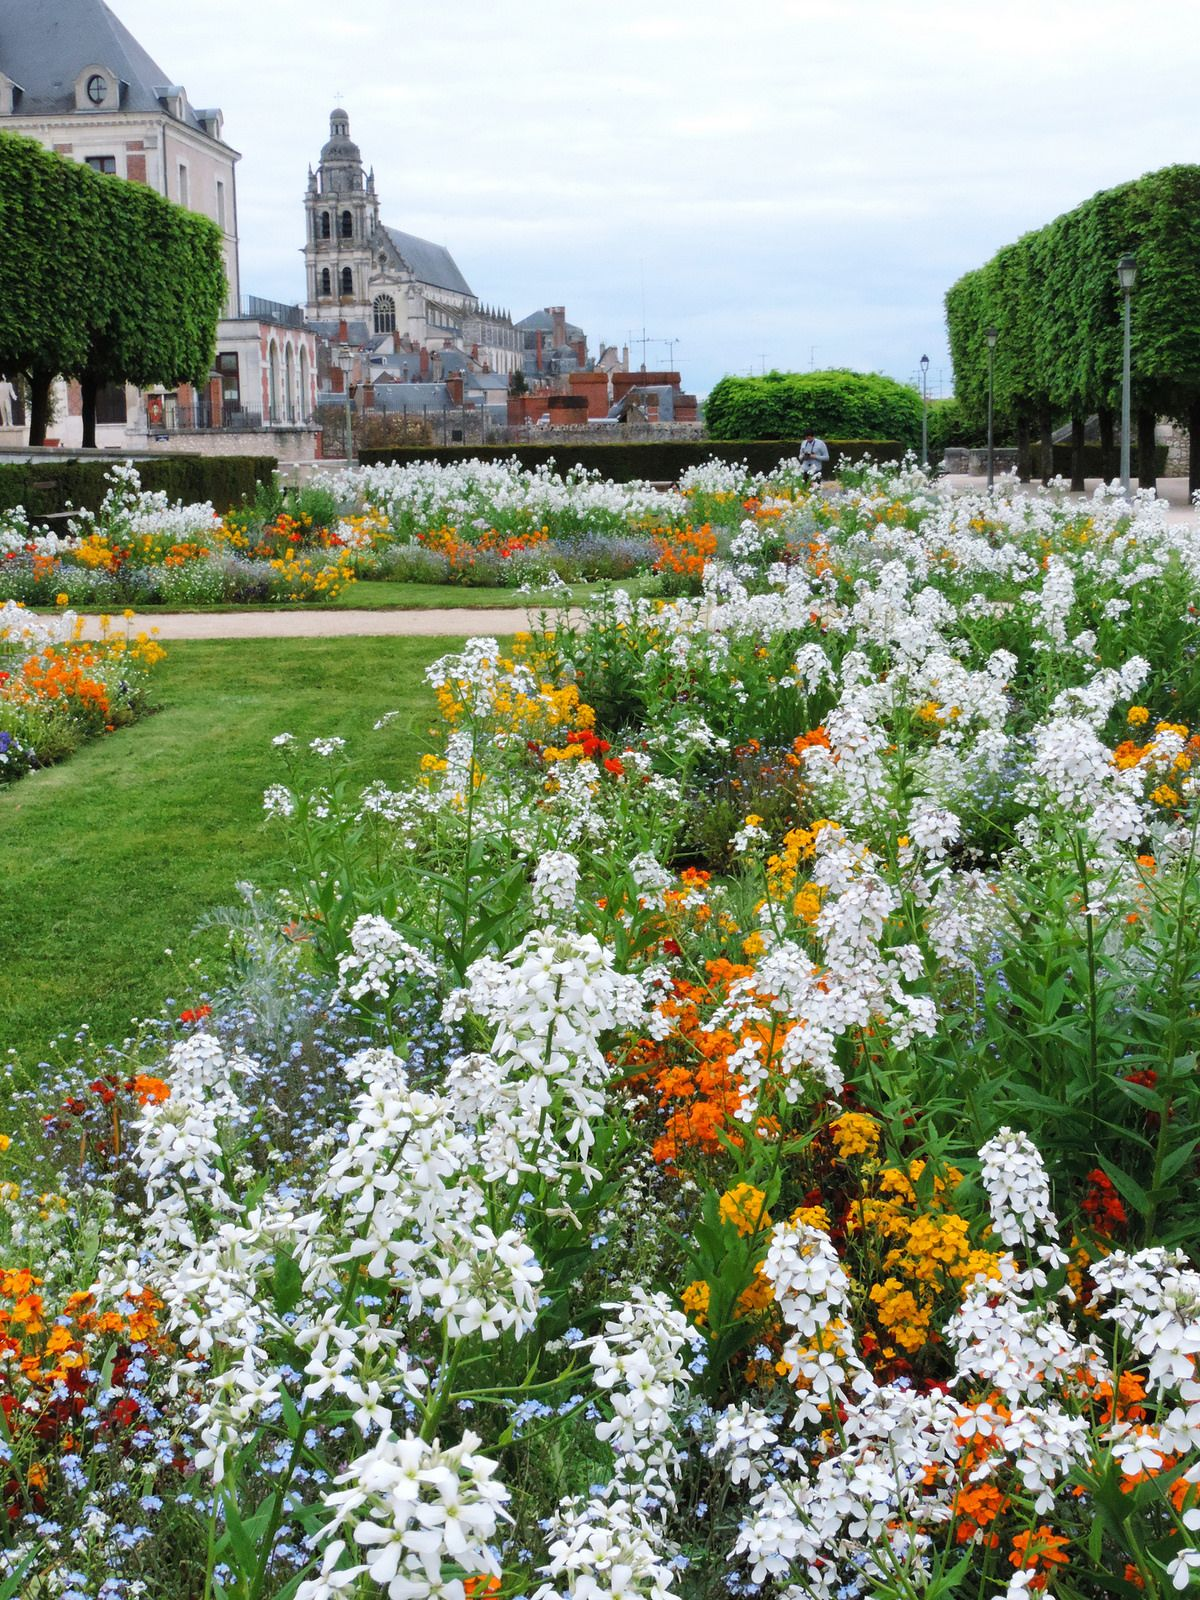 Festival Of Flowers In European Cities - Our Wanders ...